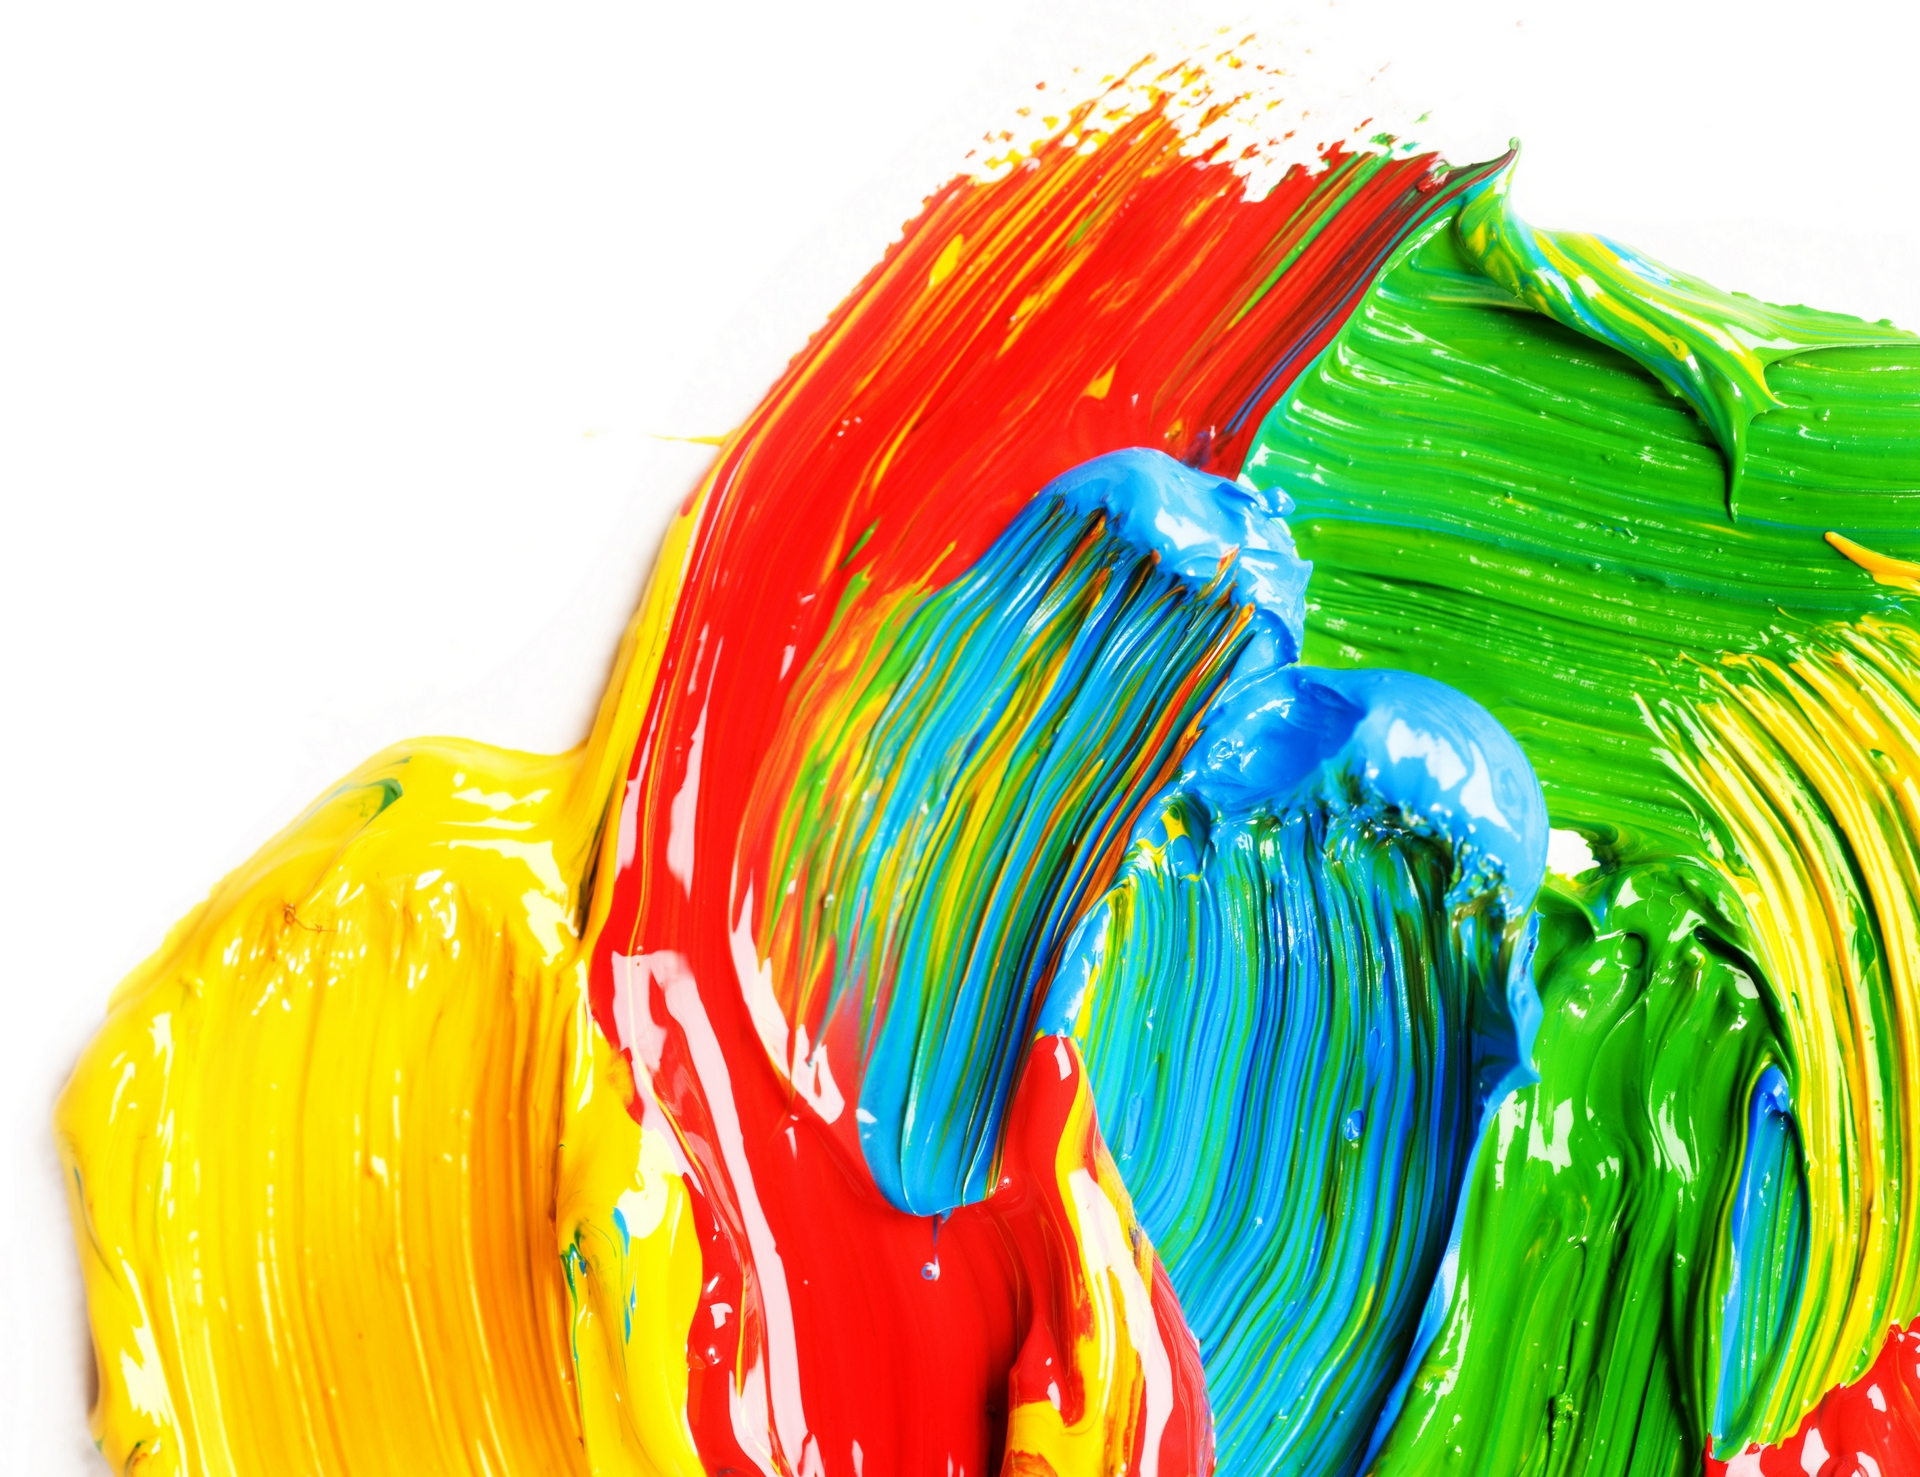 colourful paints